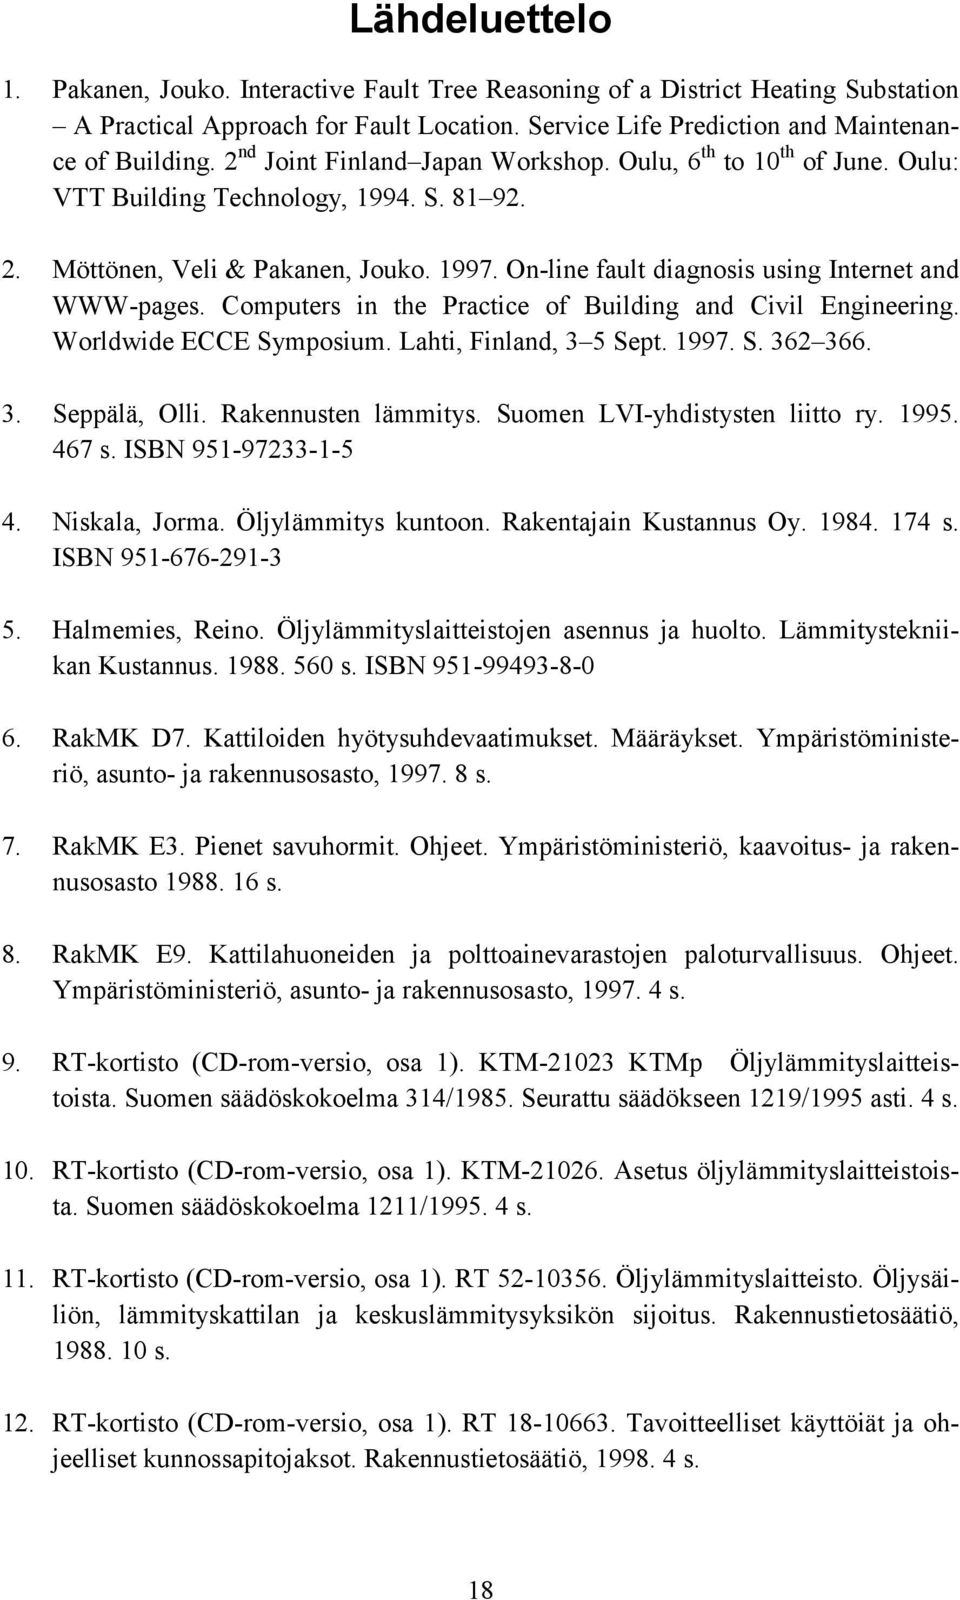 On-line fault diagnosis using Internet and WWW-pages. Computers in the Practice of Building and Civil Engineering. Worldwide ECCE Symposium. Lahti, Finland, 3 5 Sept. 1997. S. 362 366. 3. Seppälä, Olli.